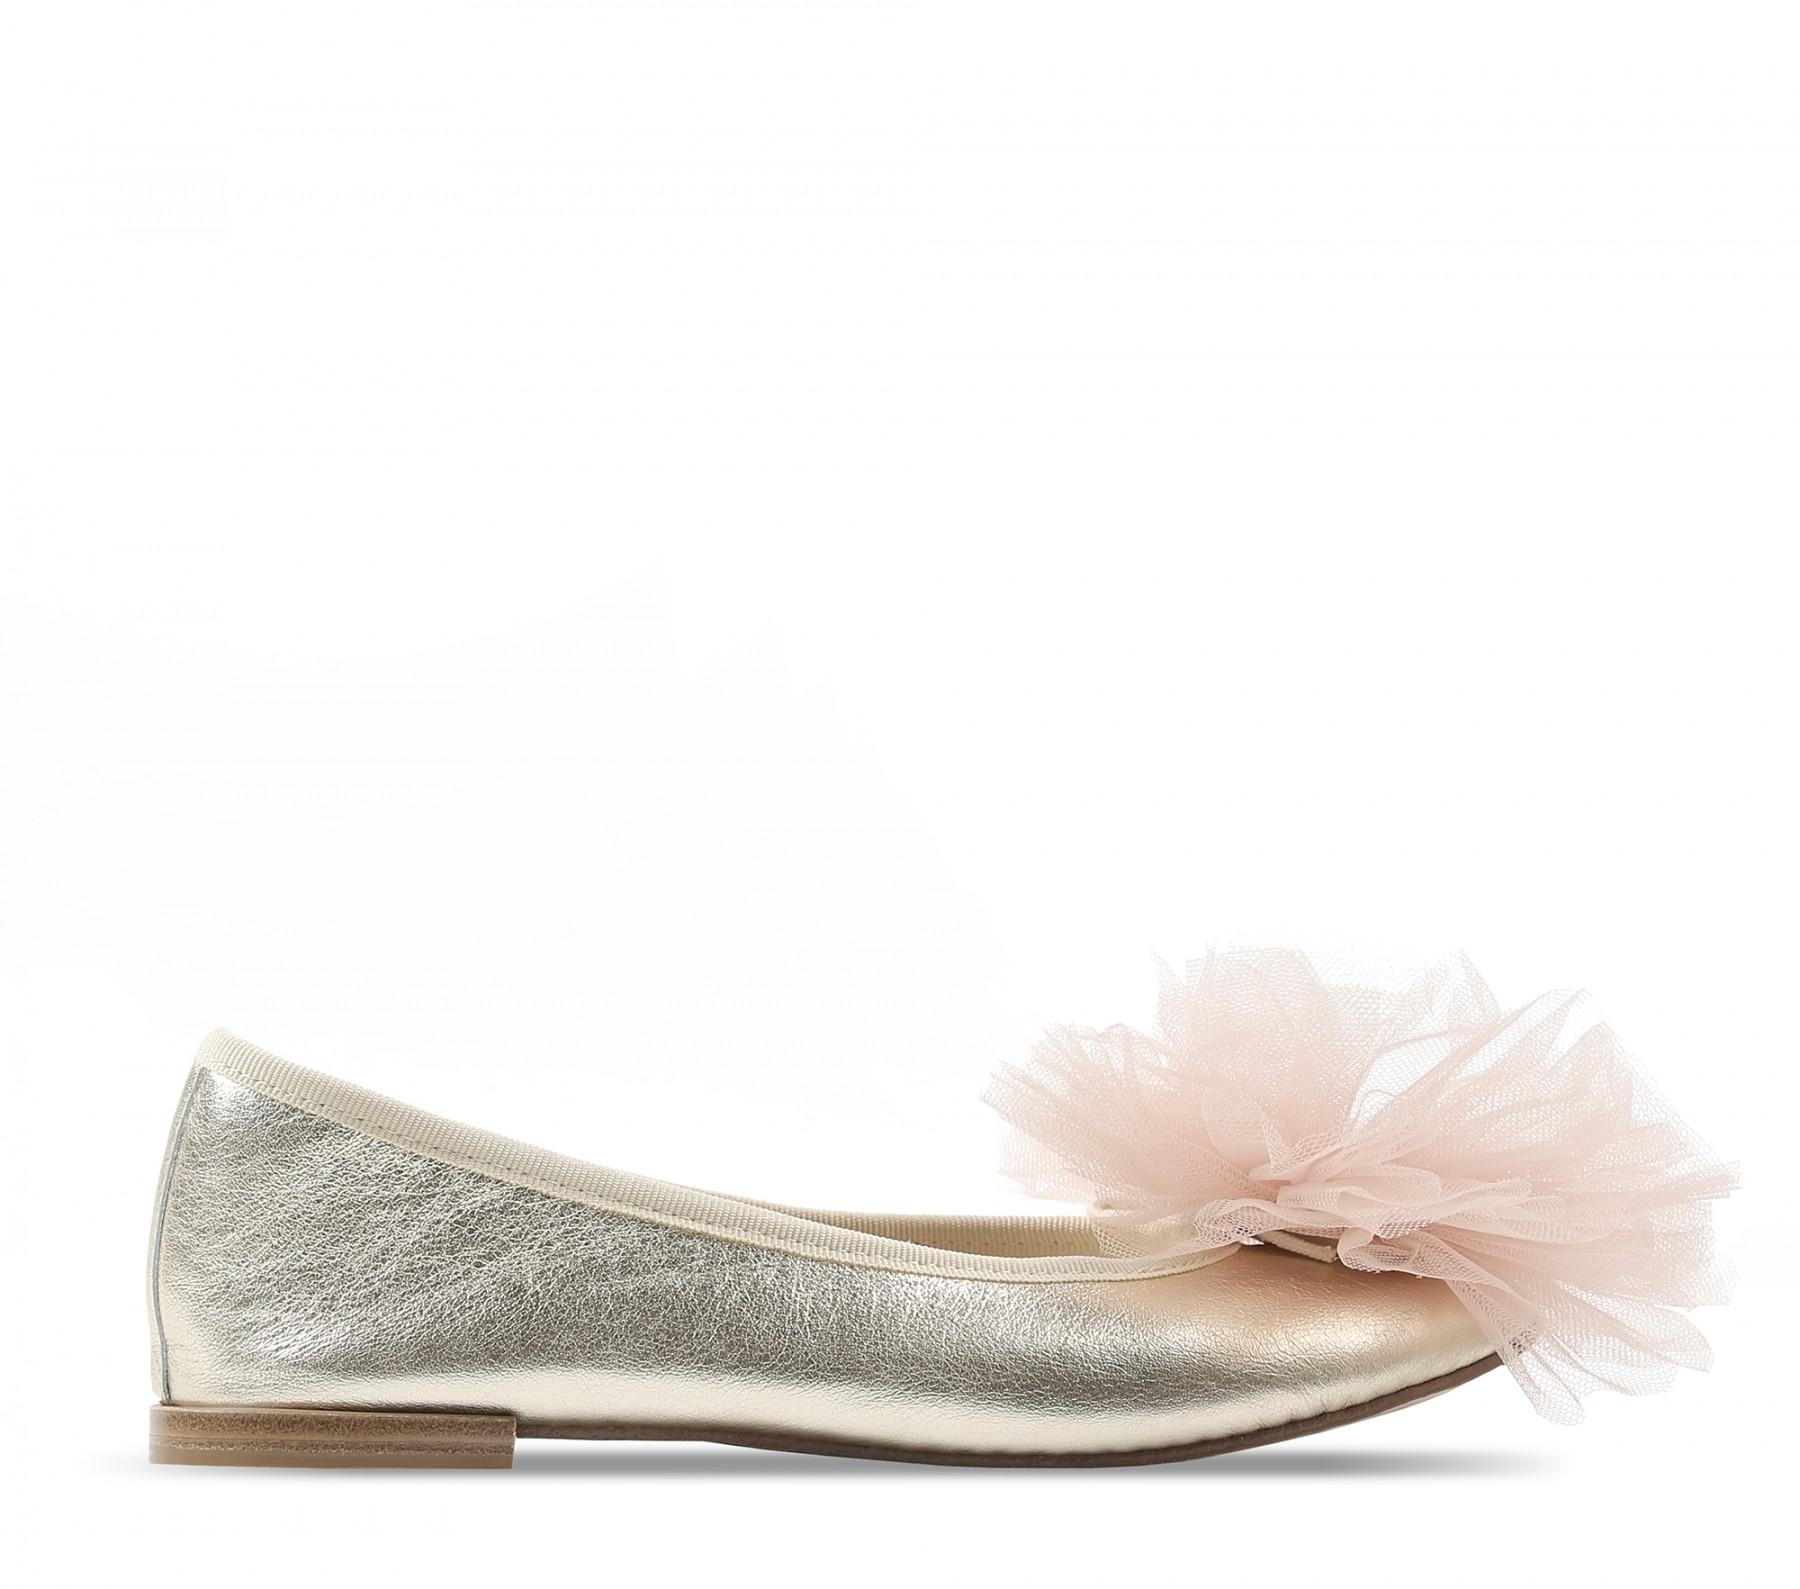 Repetto Tutu Cendrillon